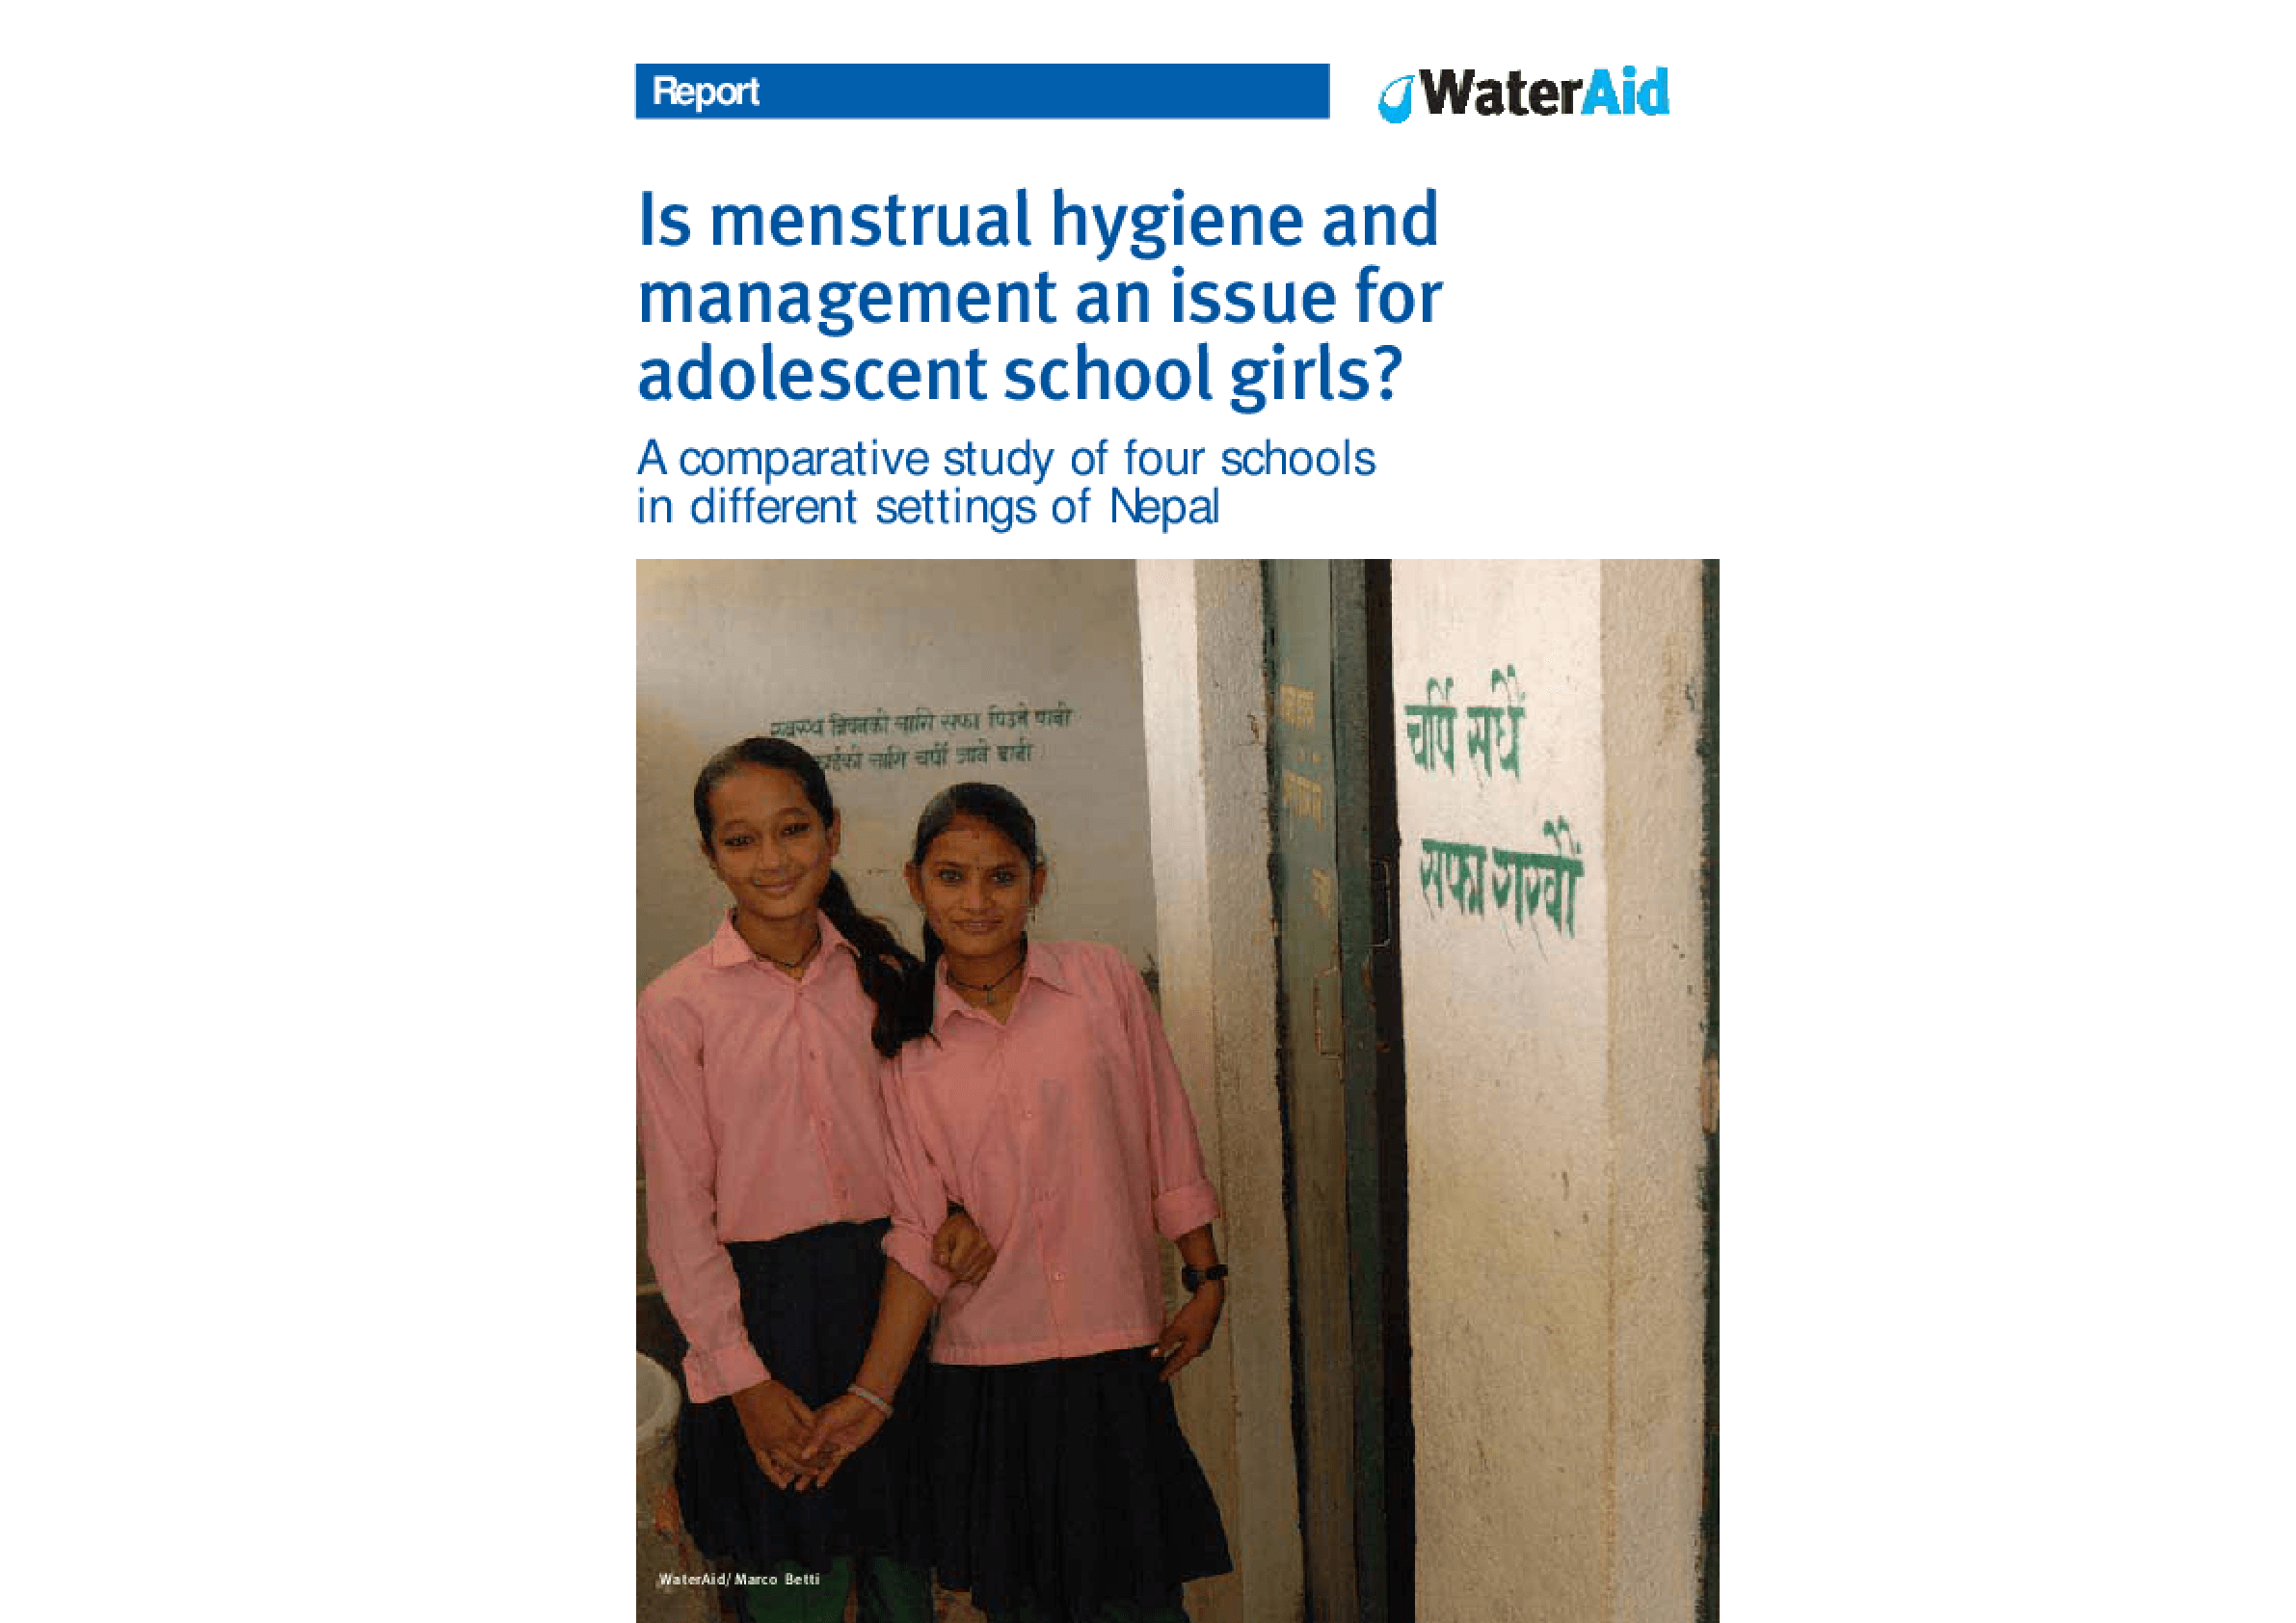 Is Menstrual Hygiene and Management an Issue for Adolescent School Girls?